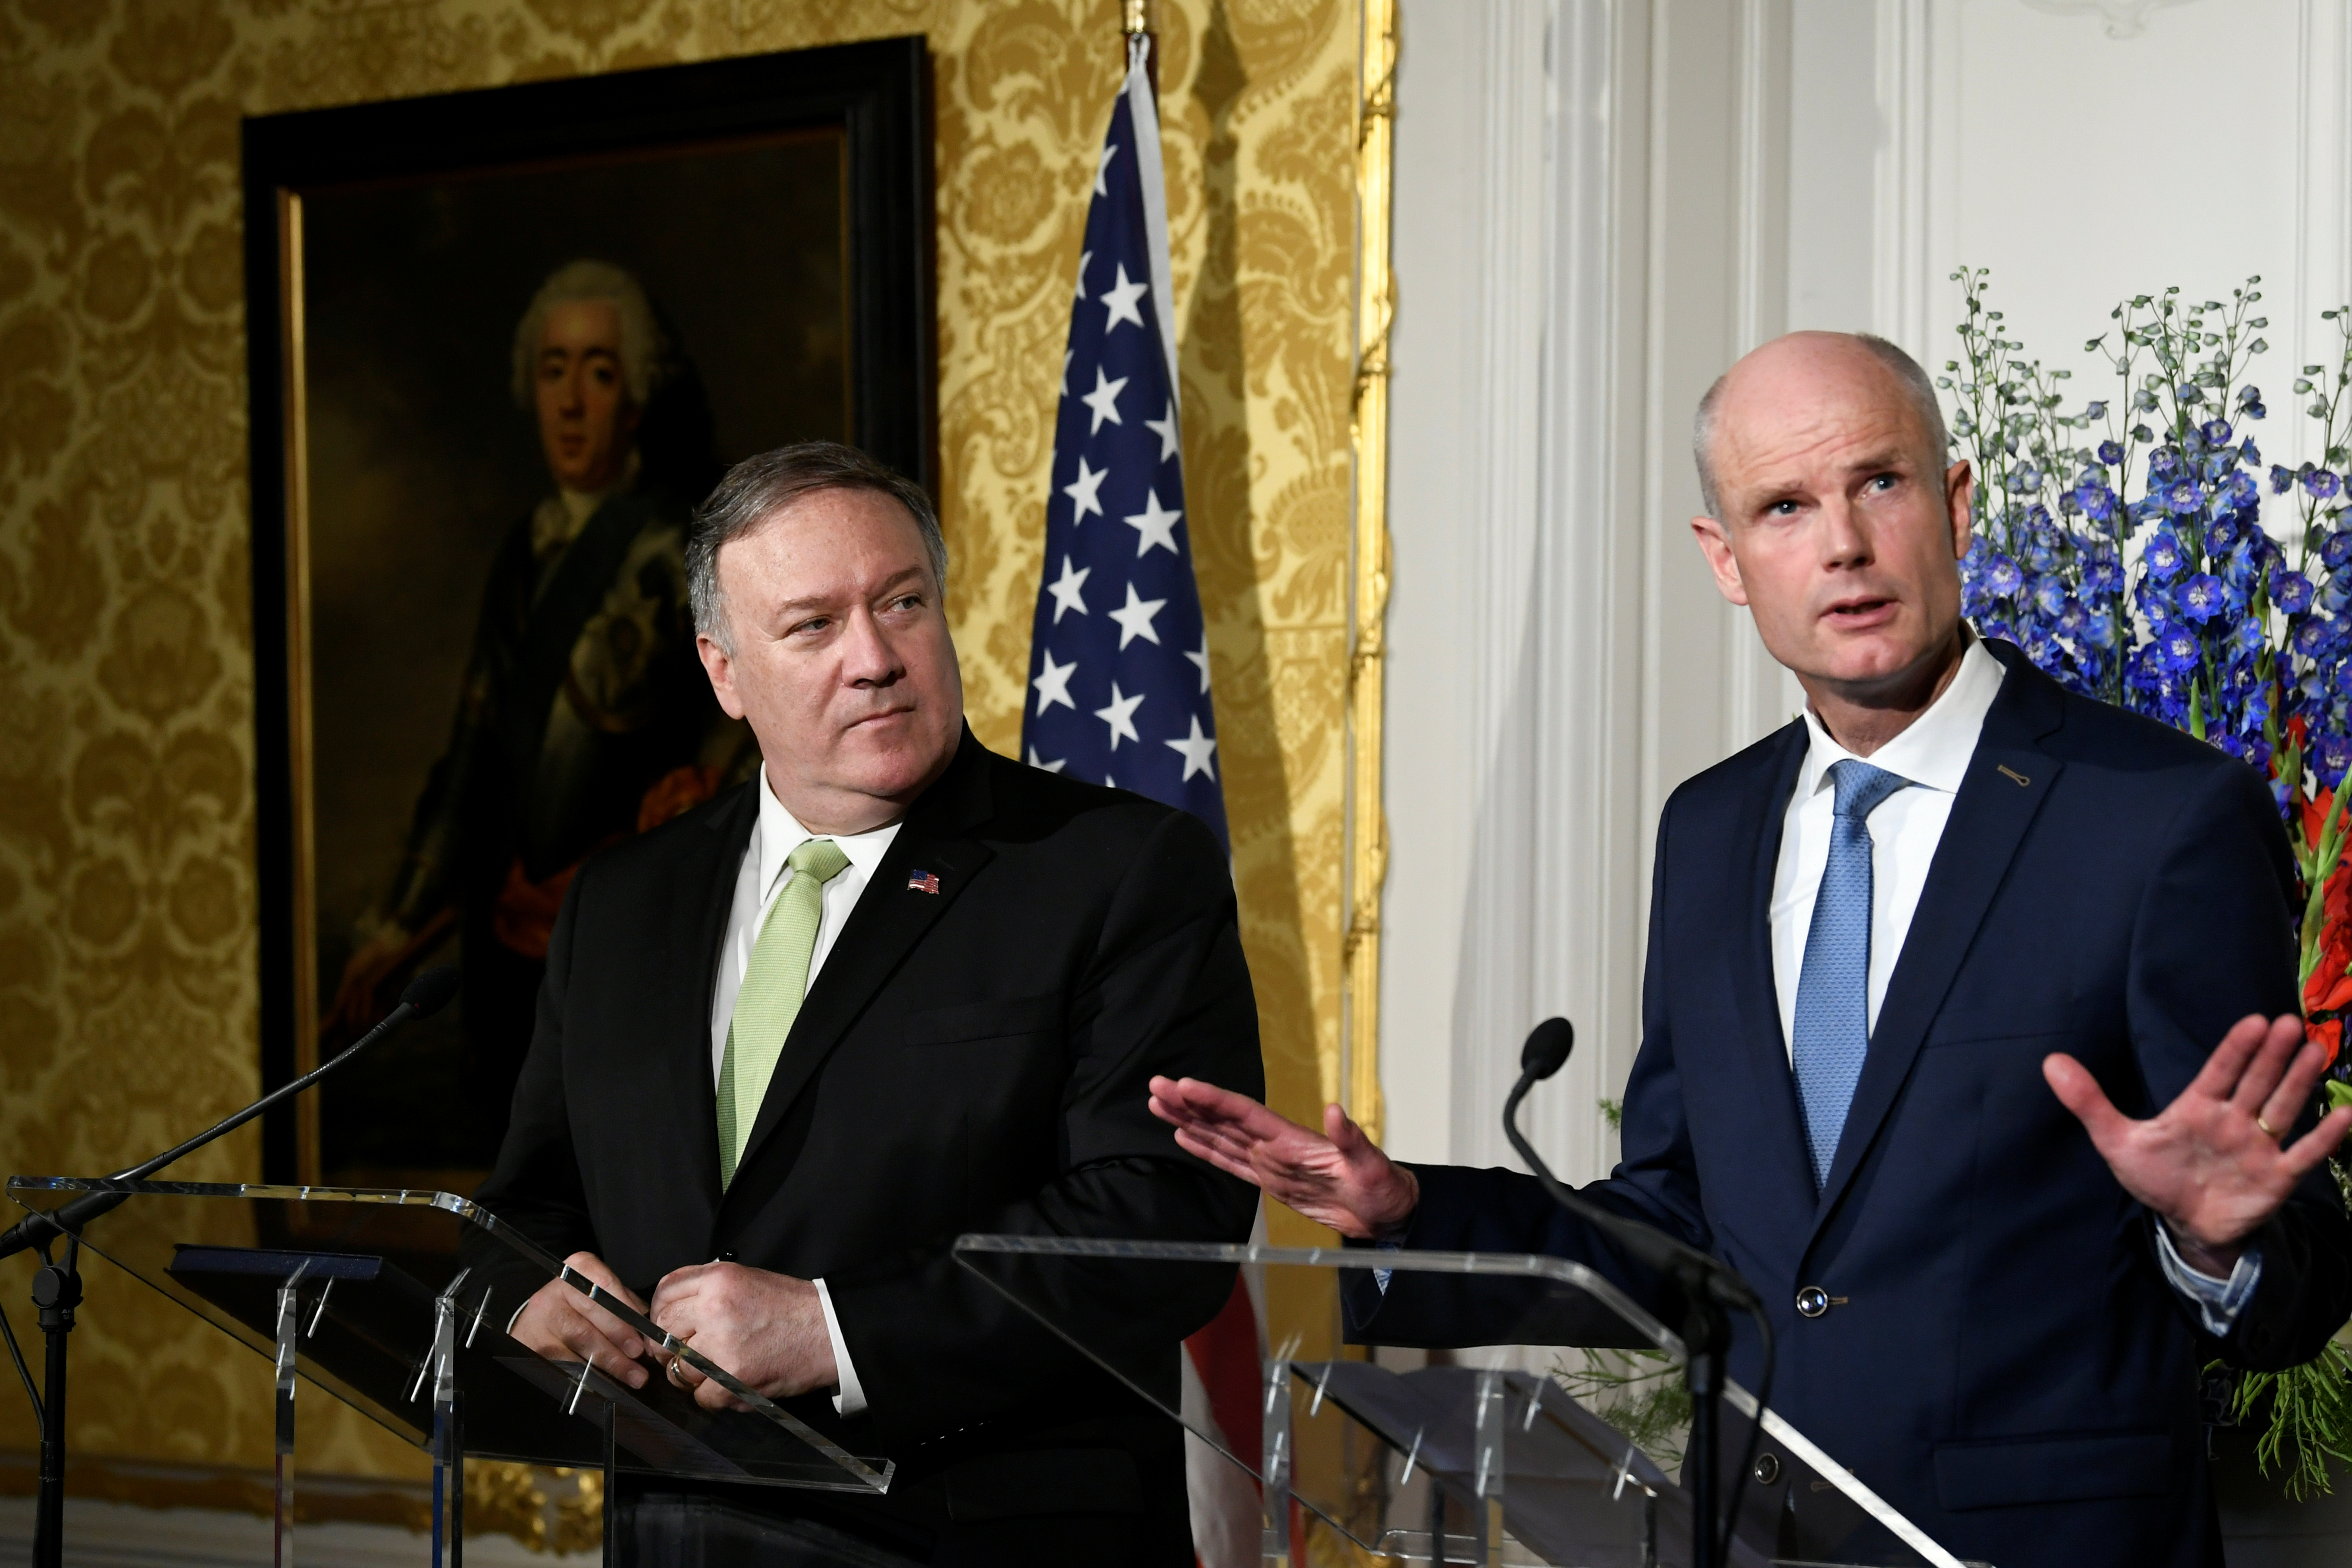 U.S. Secretary of State Mike Pompeo looks on as Dutch Foreign Minister Stef Blok gestures during a joint news conference in The Hague, Netherlands, June 3, 2019.